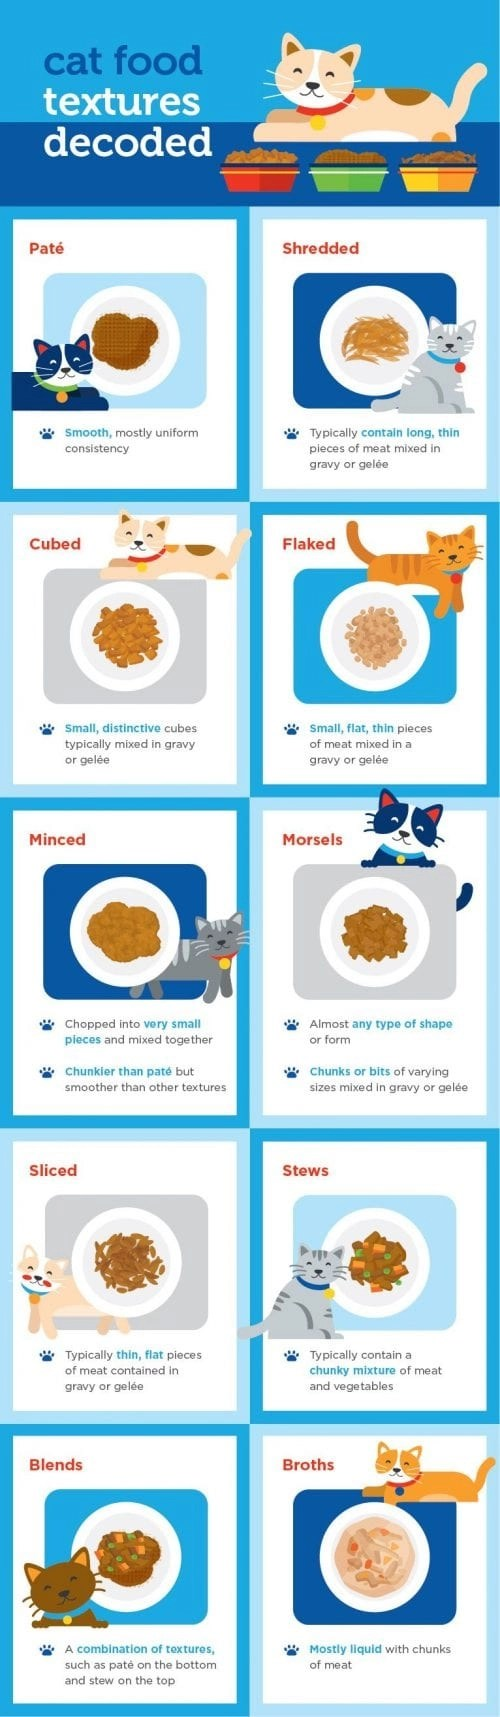 Canned Food Options for Your Feline Friend Infographic